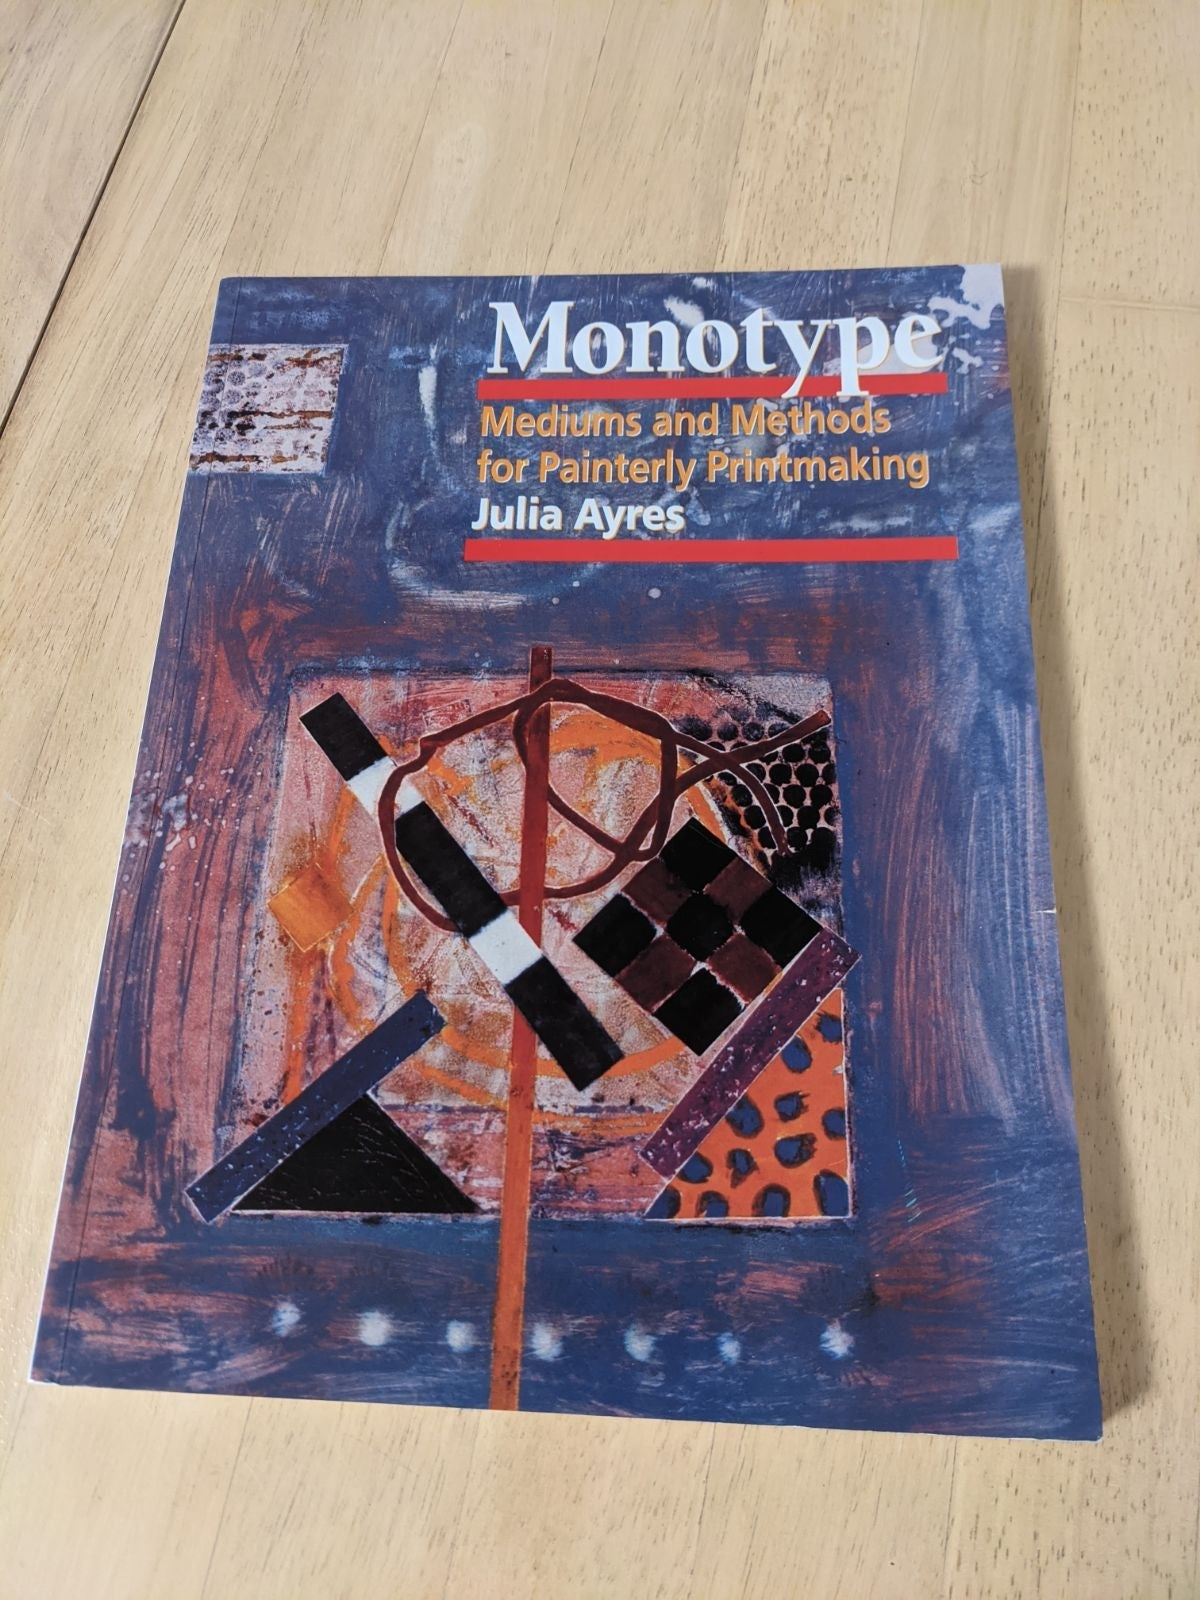 Monotype book